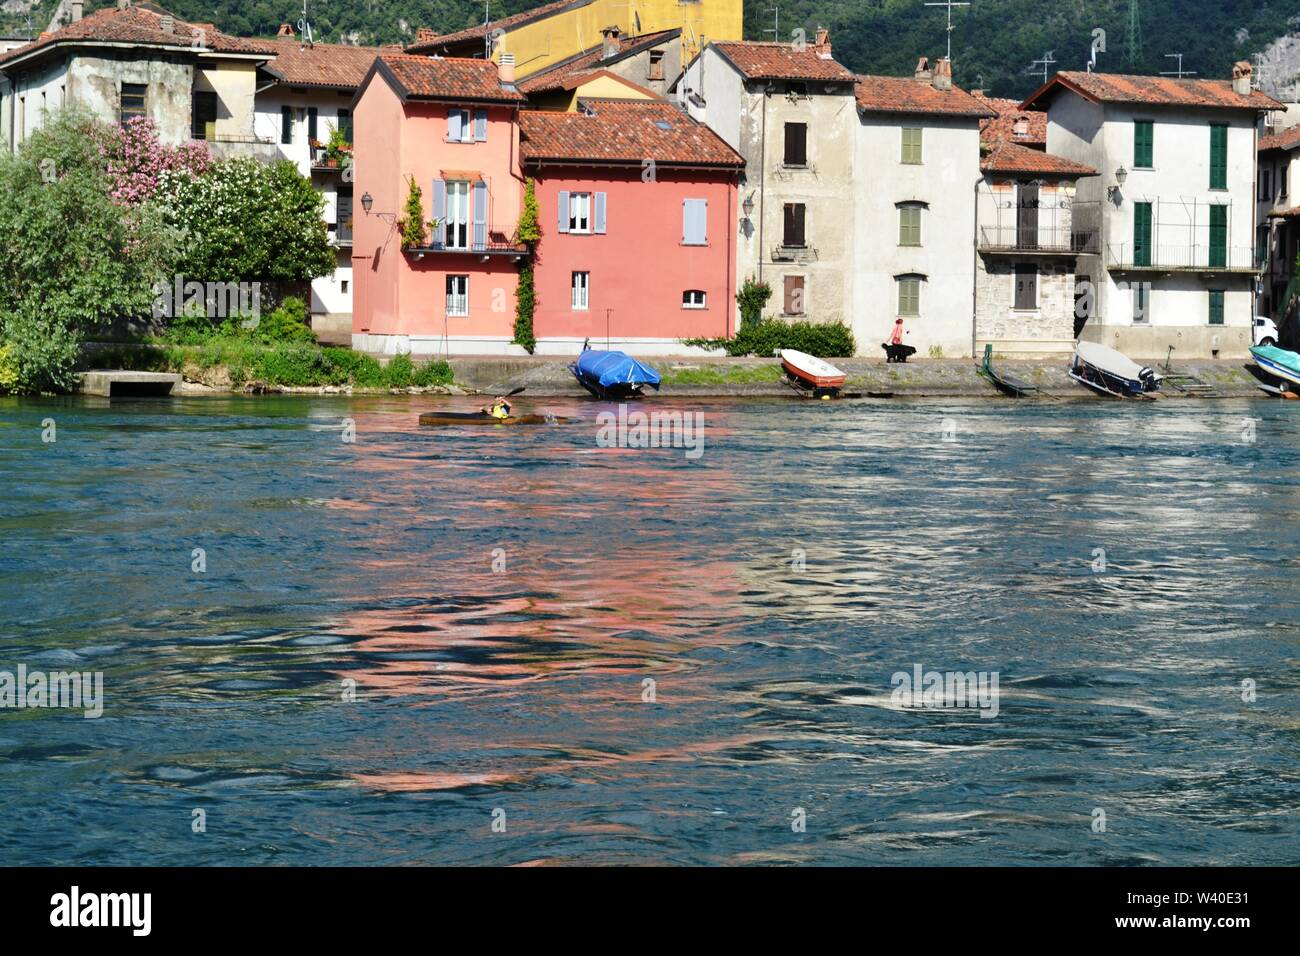 Lecco/Italy - July 10, 2014: Tourist is rowing his canoe   up the Adda river at Lecco in direction of the lake Como and Lecco in a sunny summer day. Stock Photo